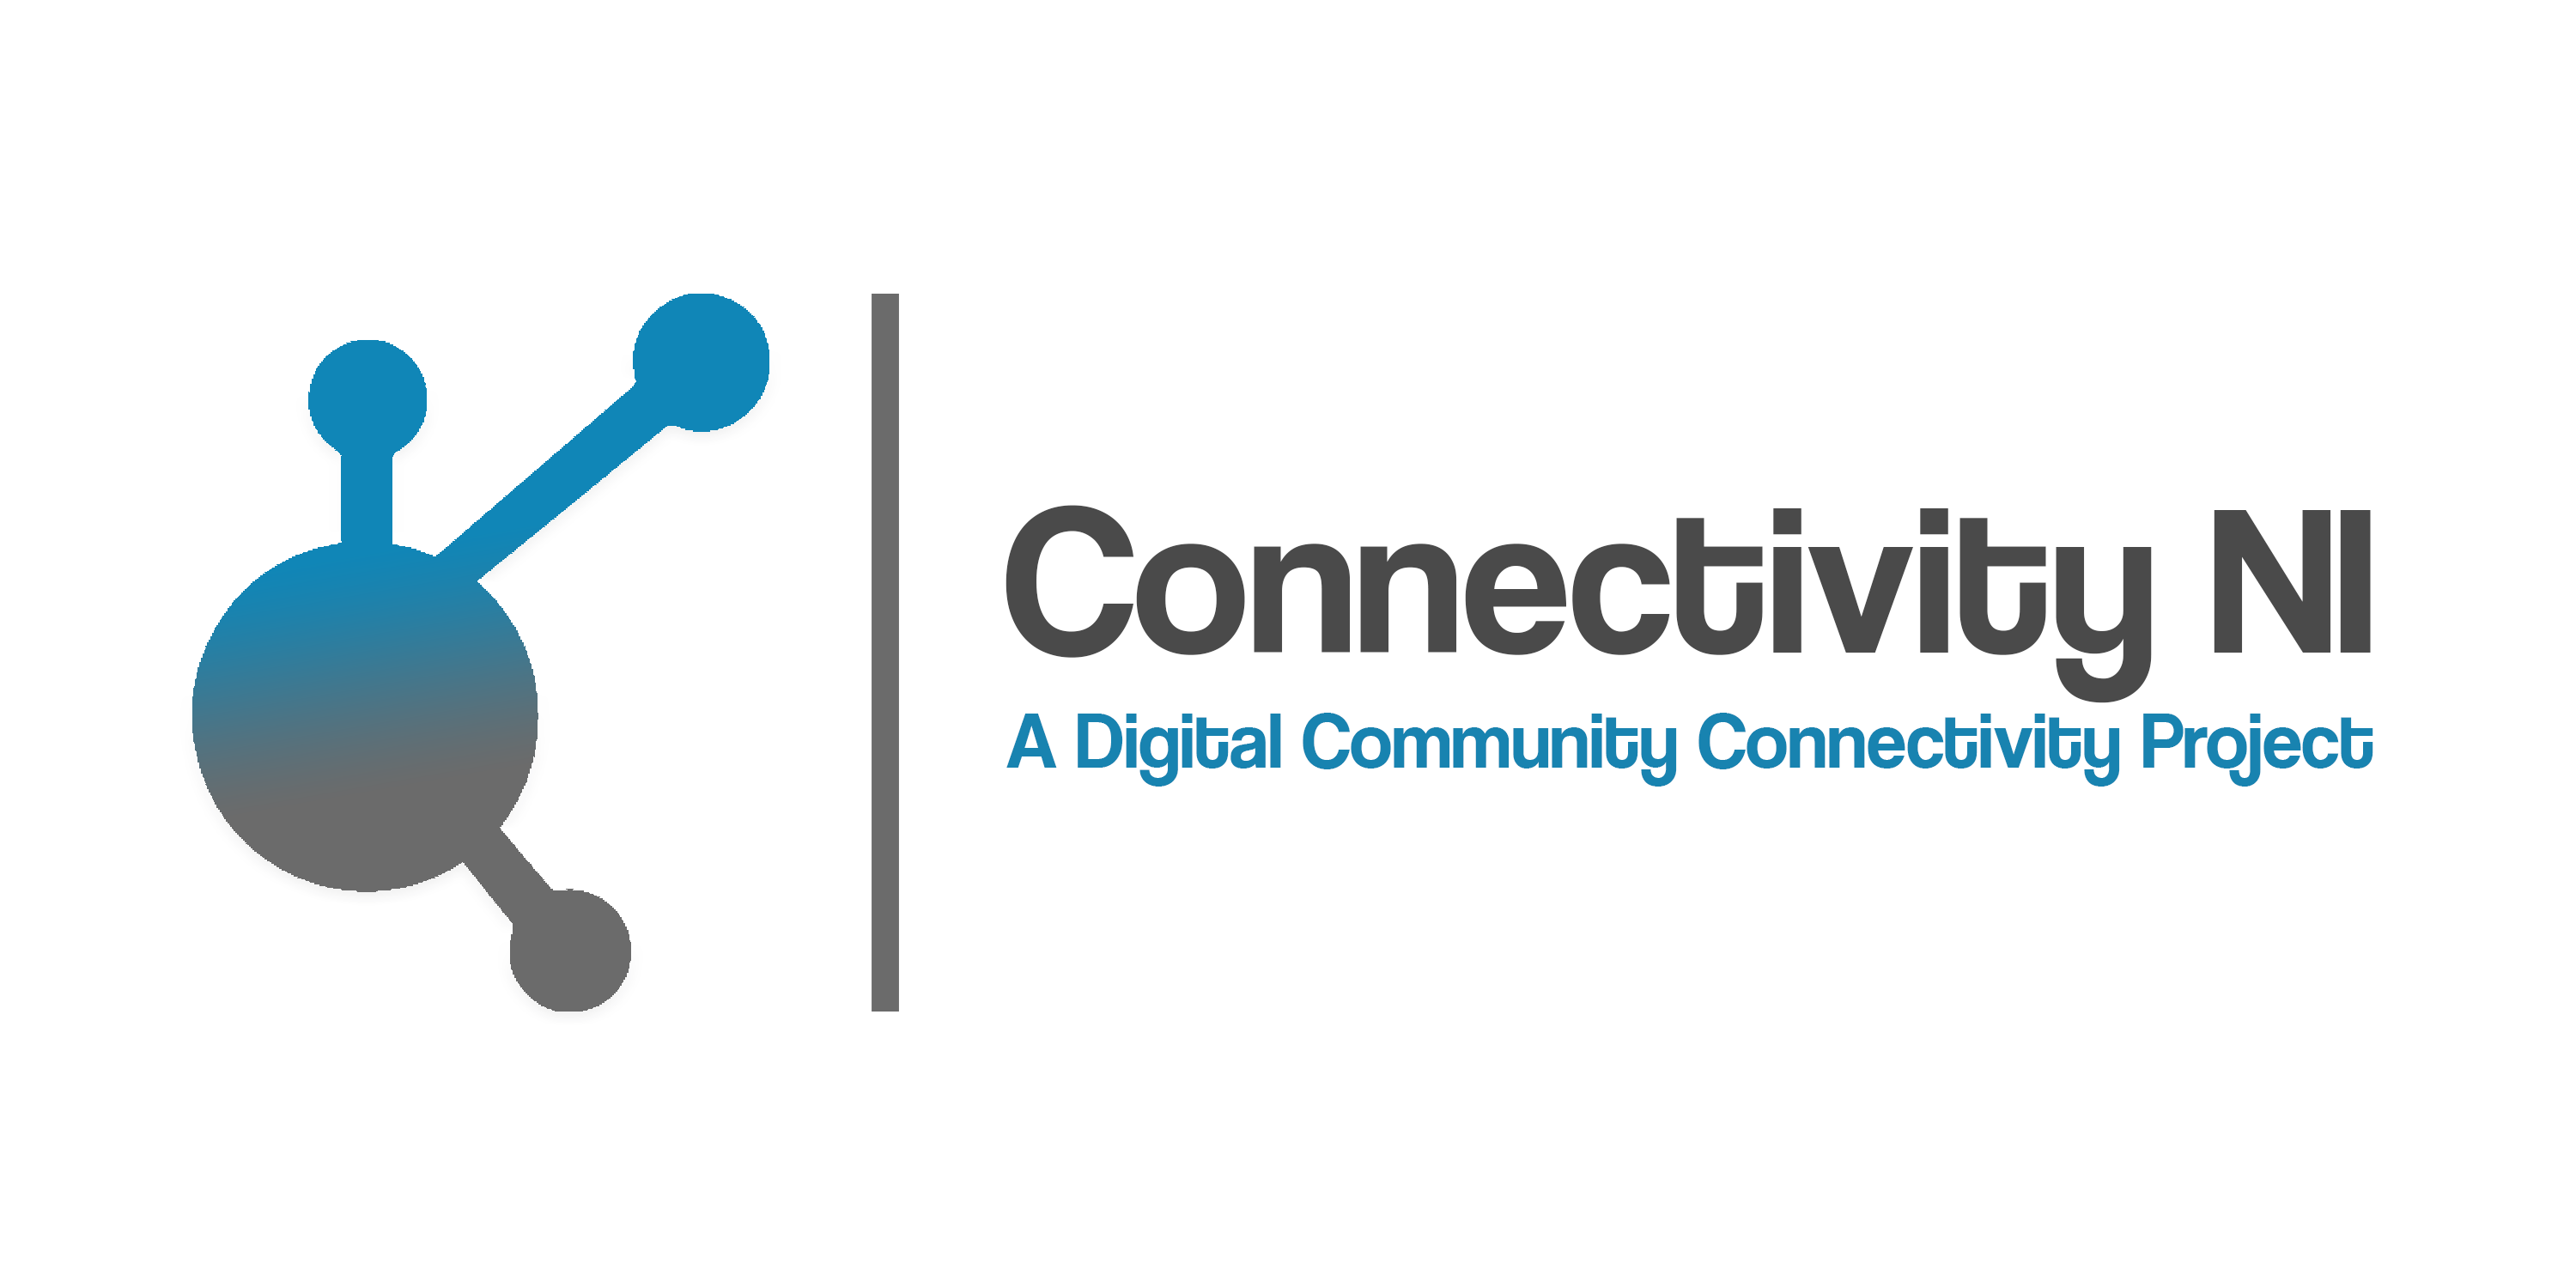 ConnectivityNI